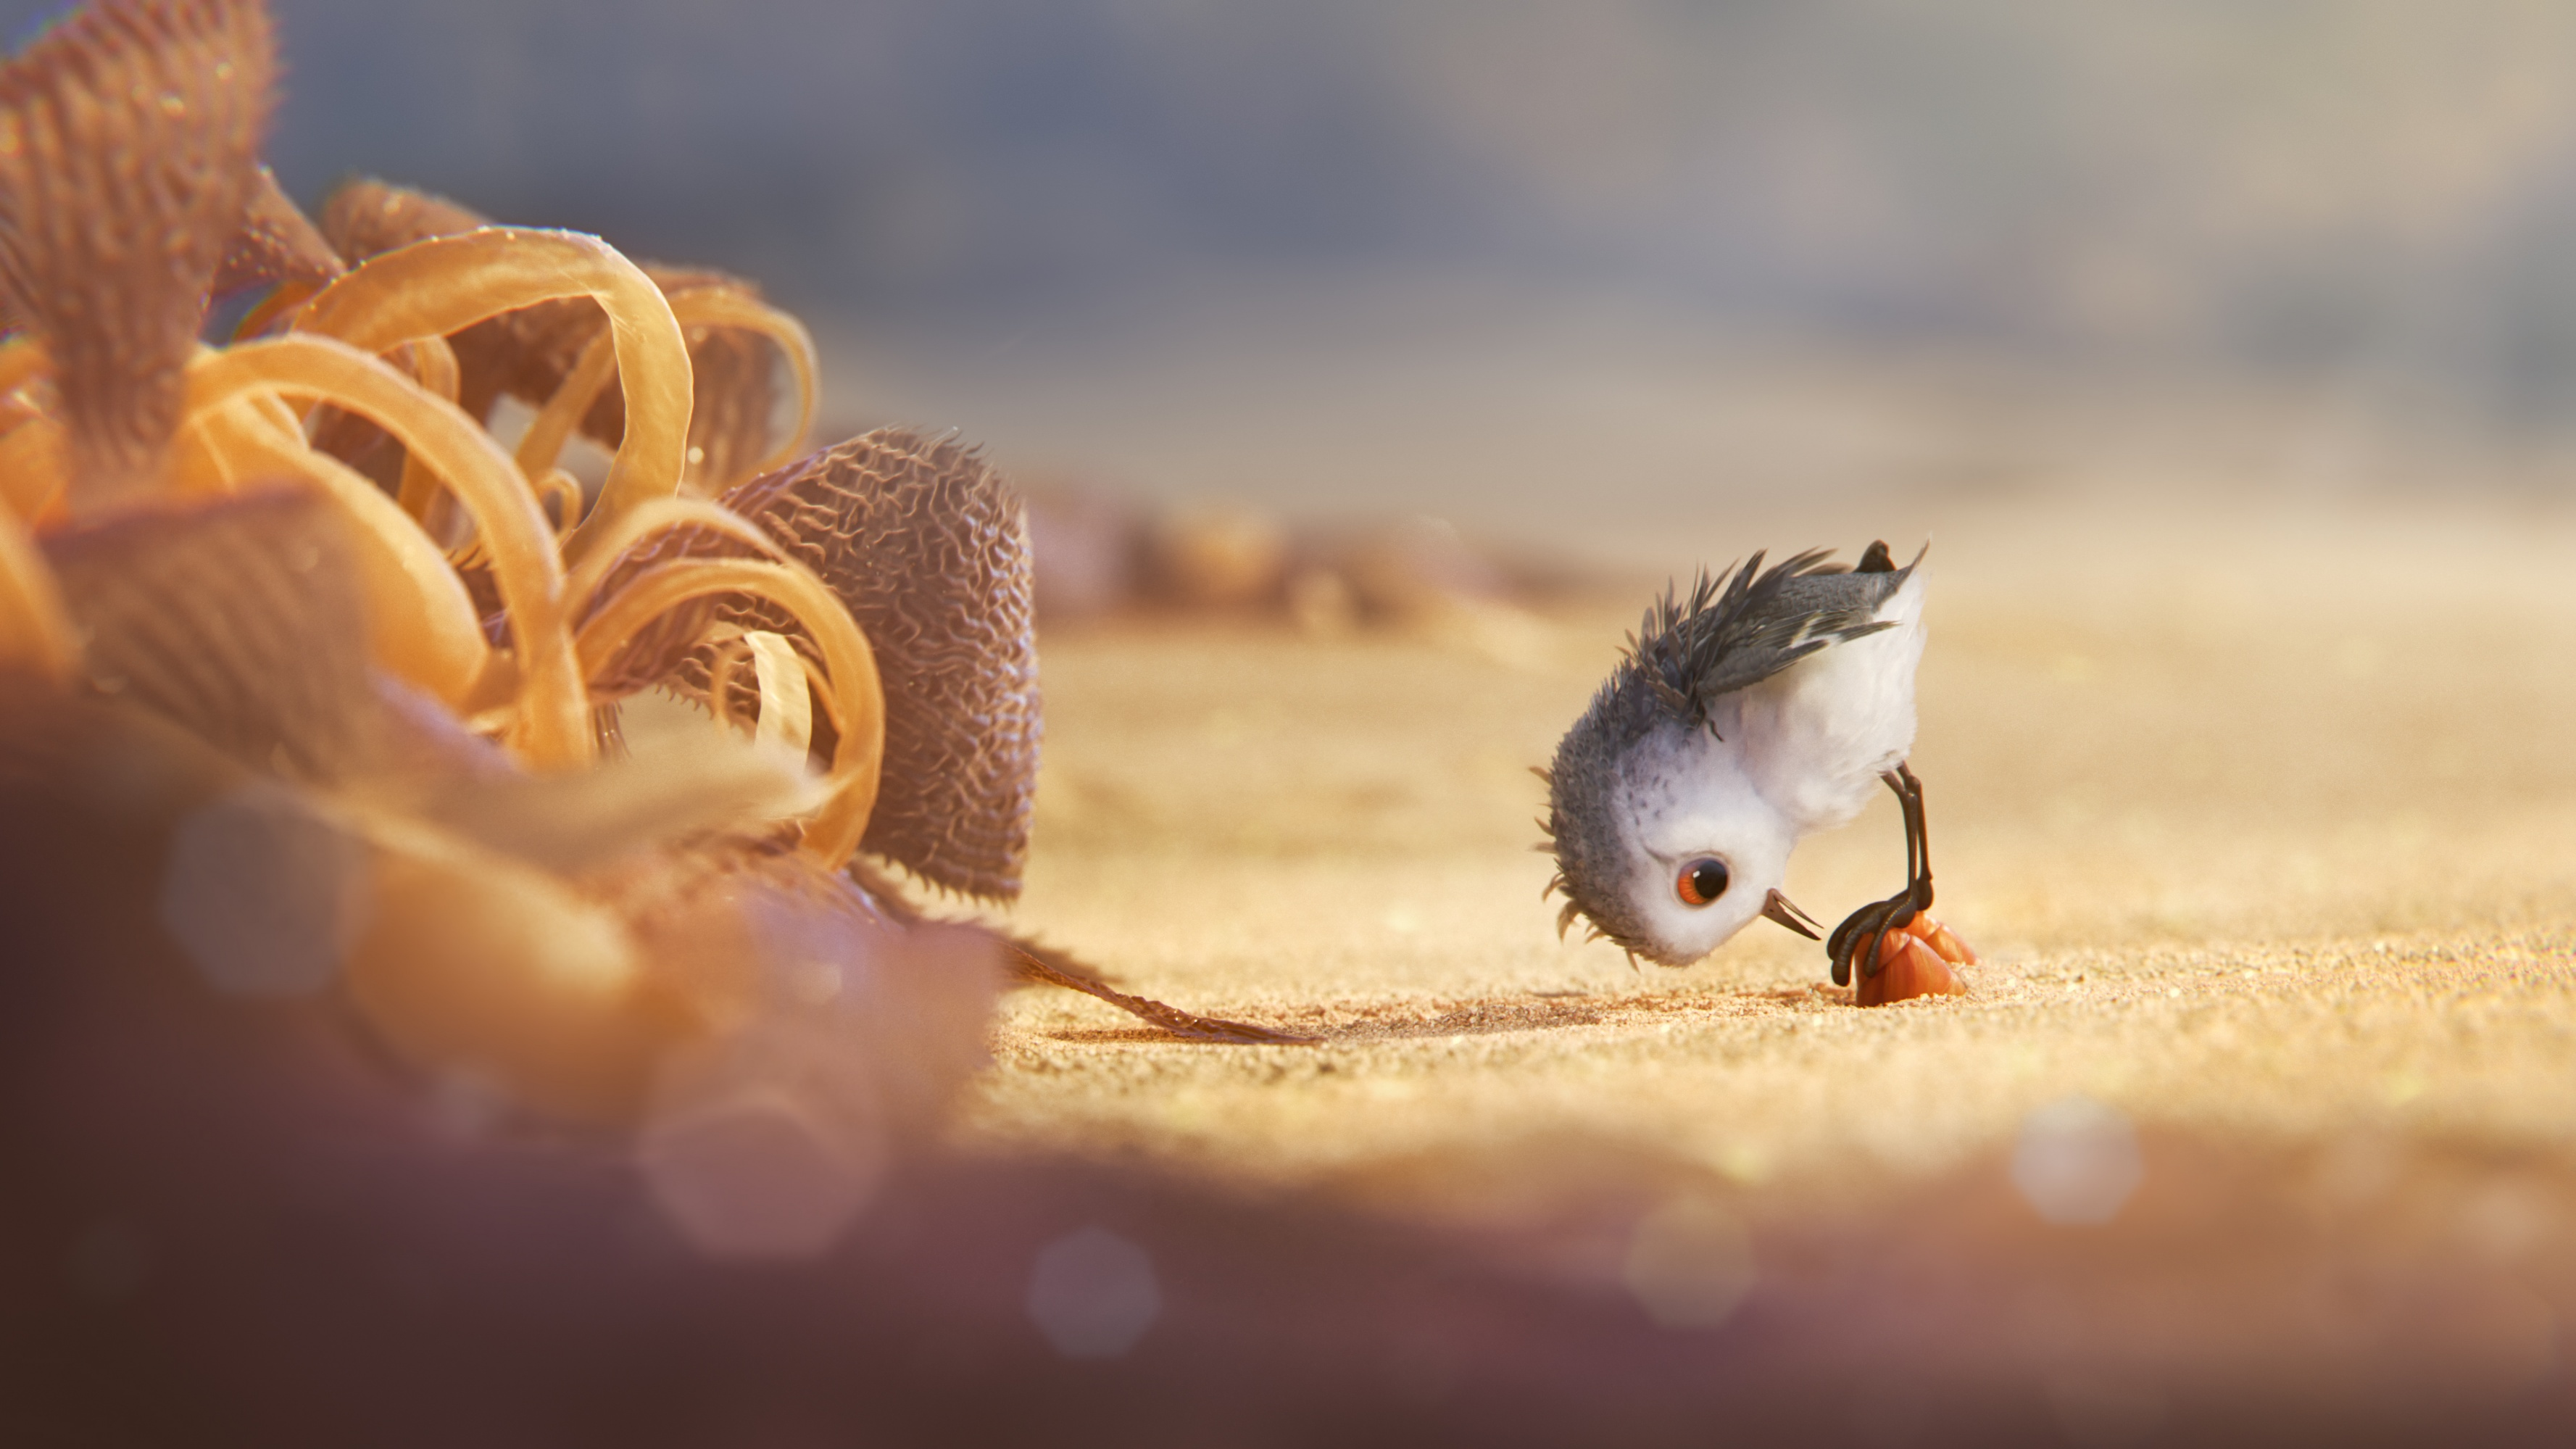 Hungry Baby Sandpiper In Piper 2016 Wallpapers